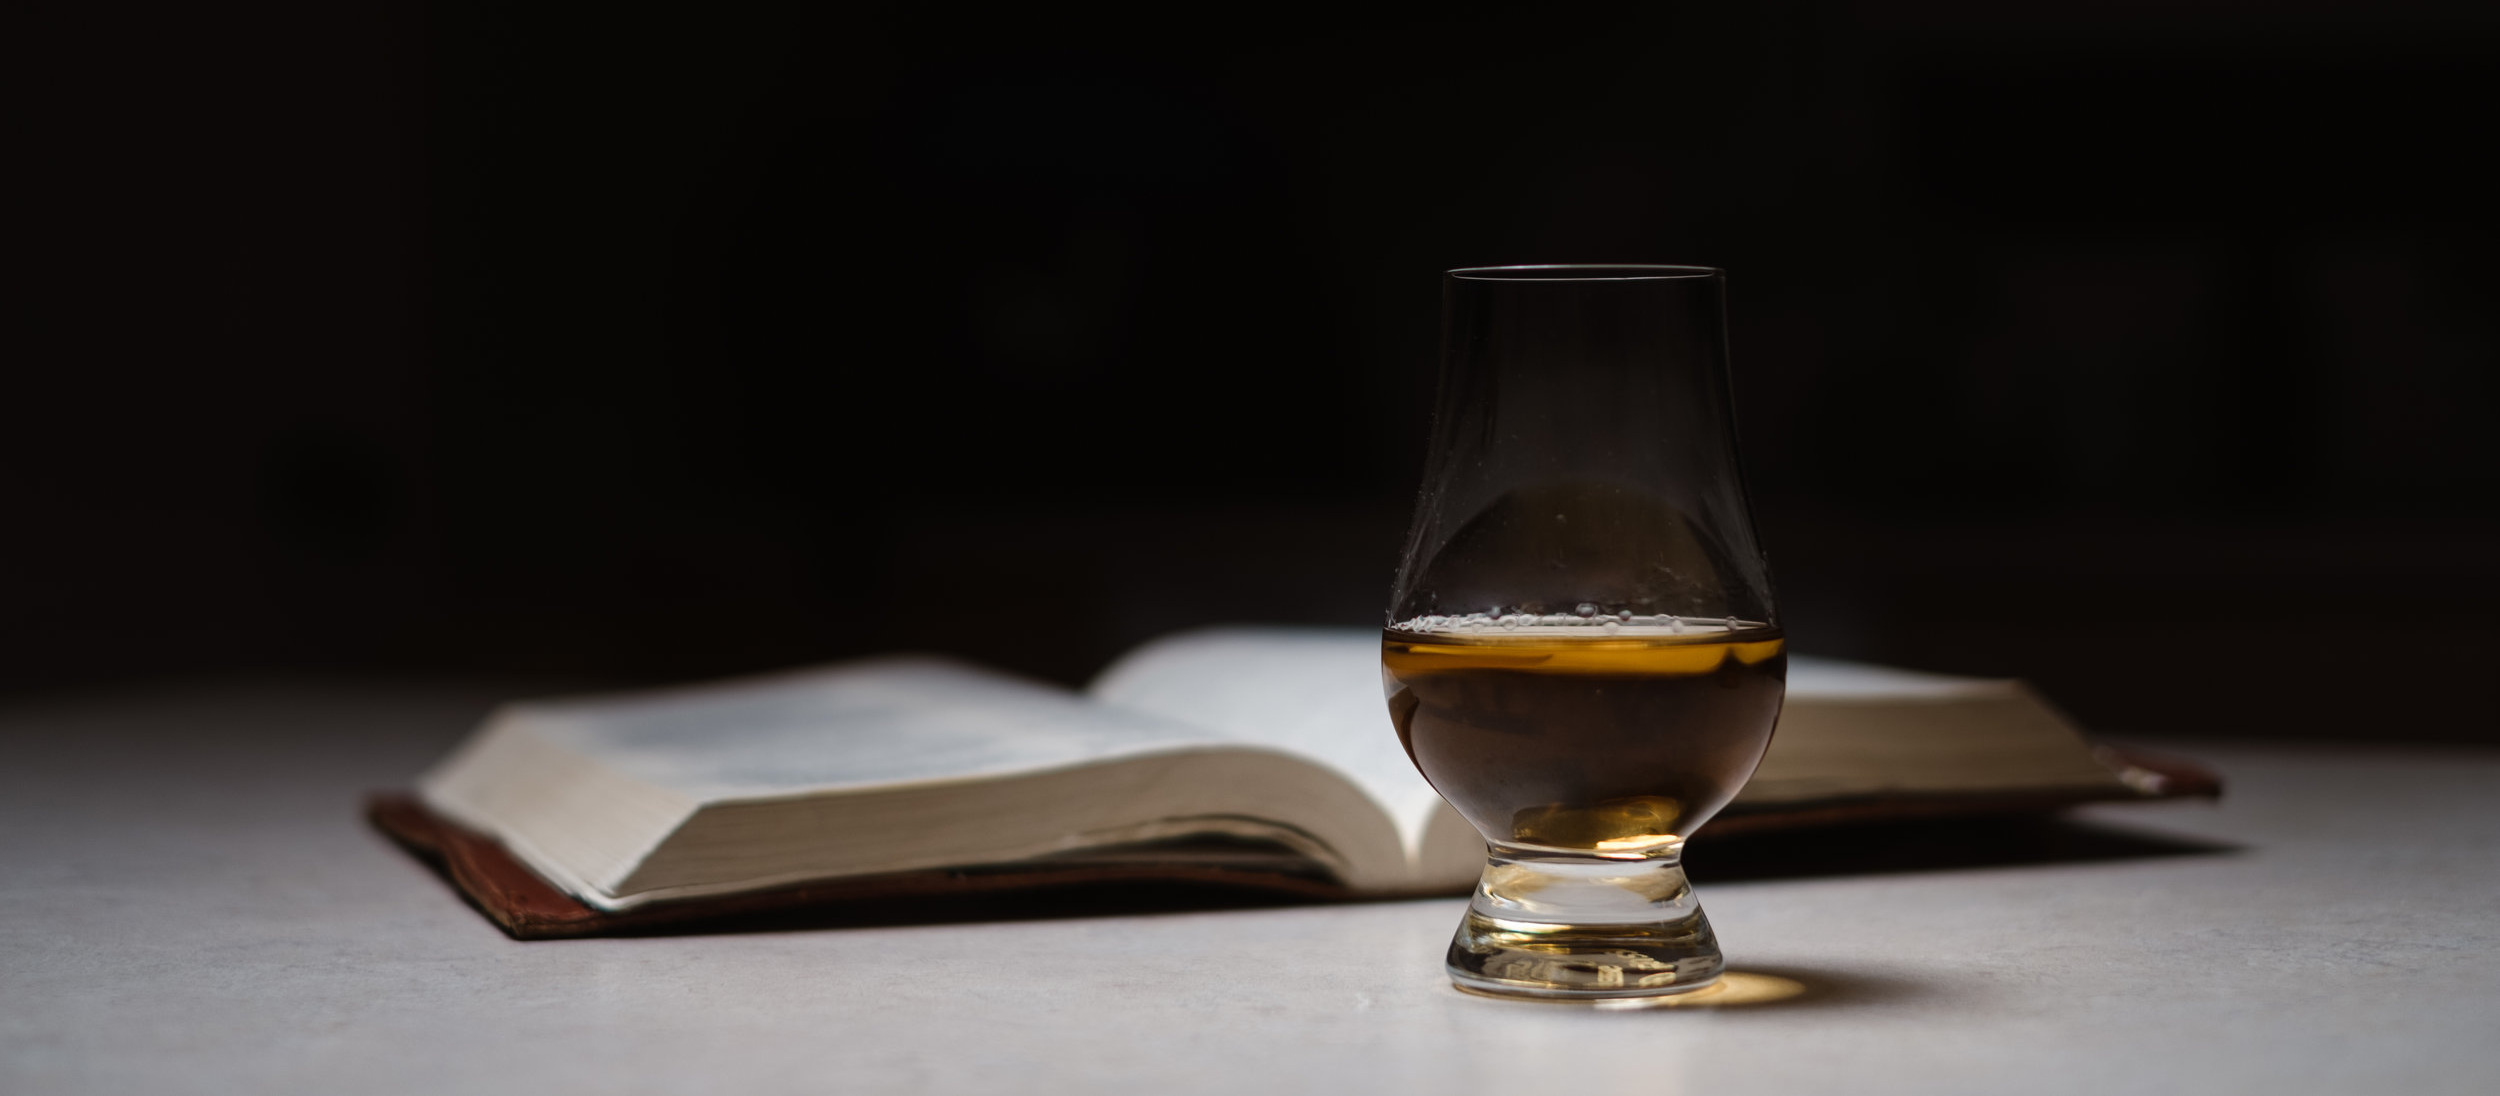 The Whiskey Library - The Conservatory for Scotch, Bourbon, Rye and all things Whiskey